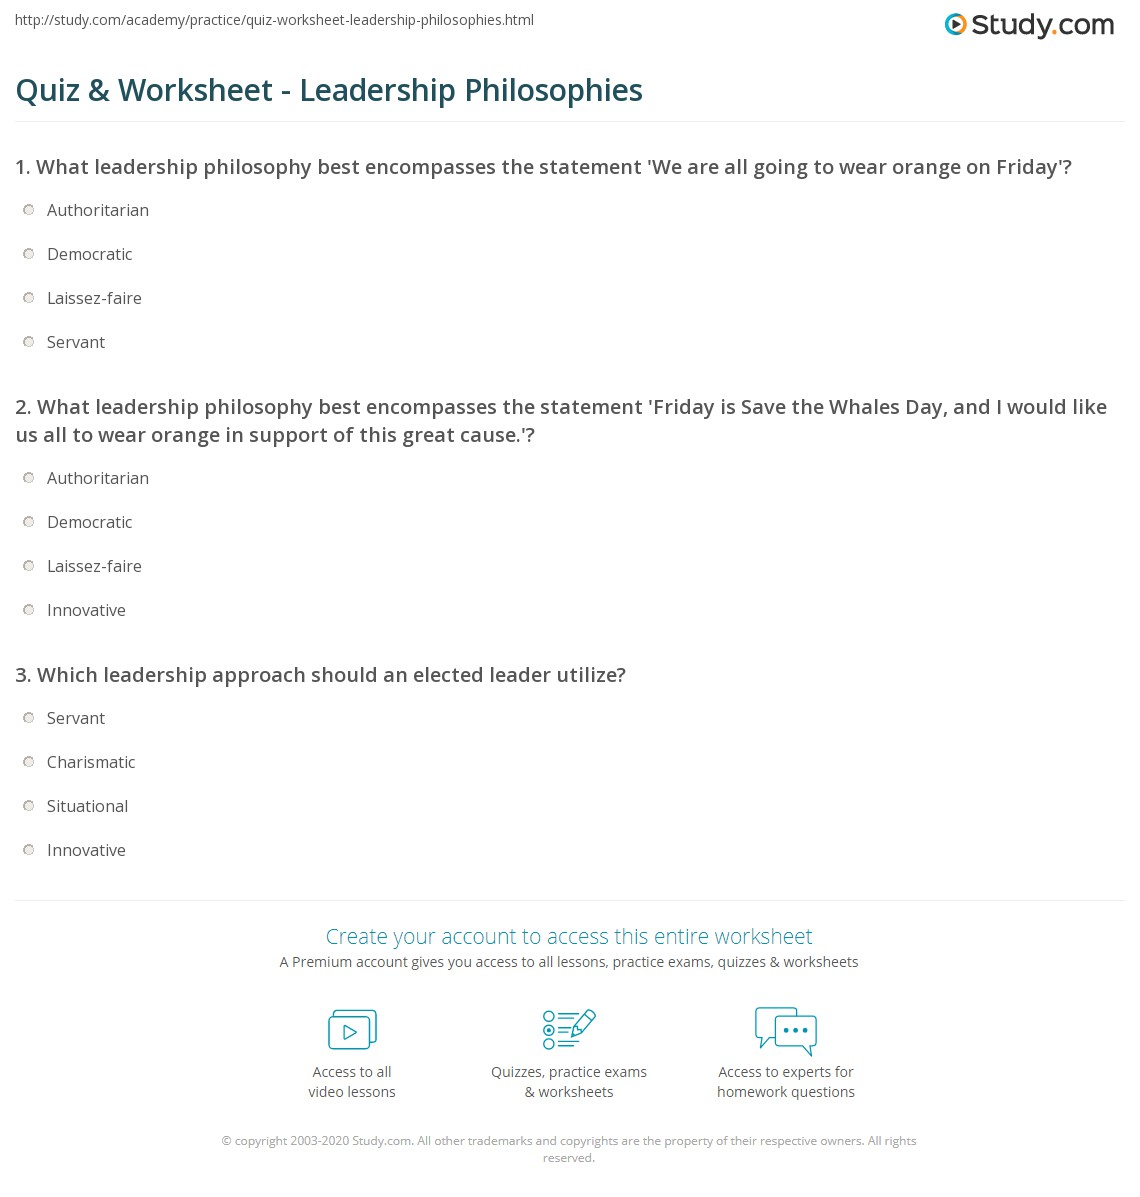 Quiz & Worksheet - Leadership Philosophies | Study.com